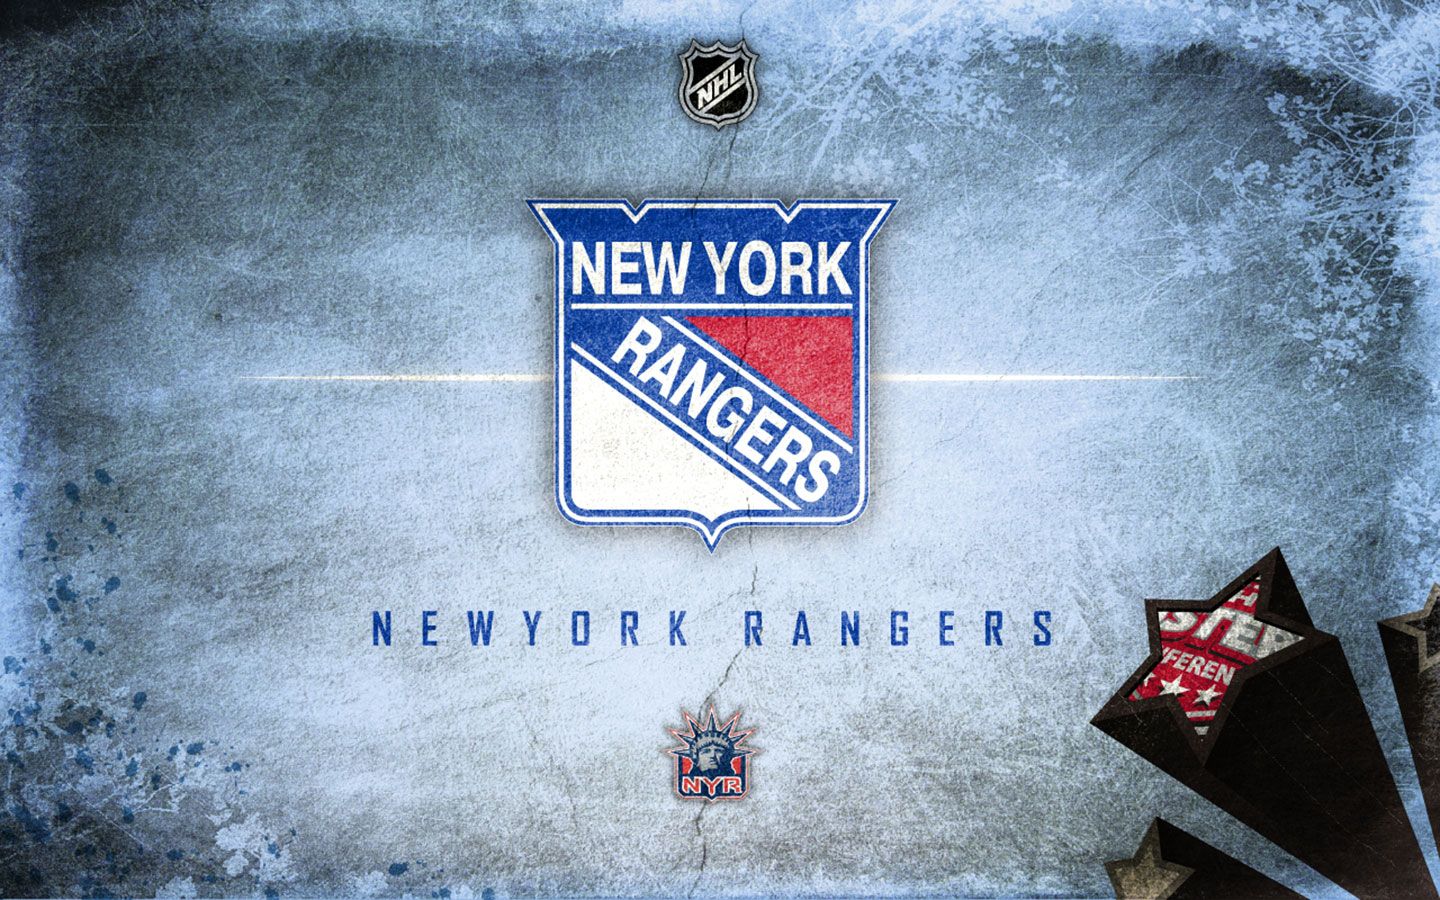 New York Rangers Iphone Wallpaper: Awesome New York Rangers Wallpaper